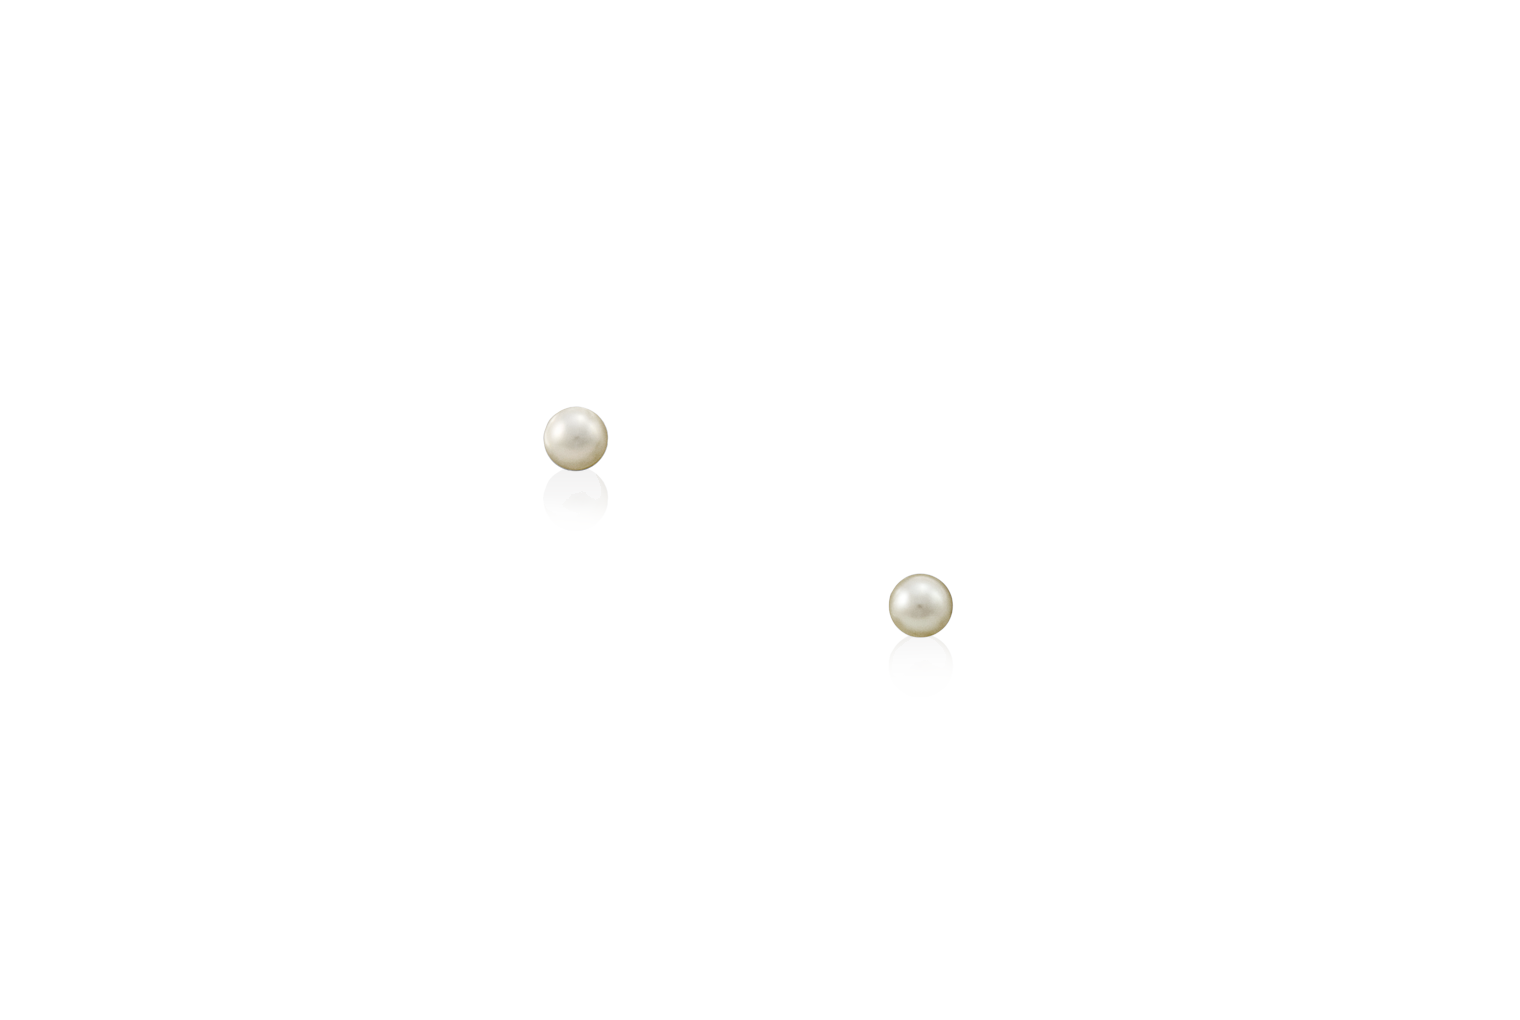 product white freshwater gold mm silver with virtuemart or alt type pearl aa earrings component posts detail stud